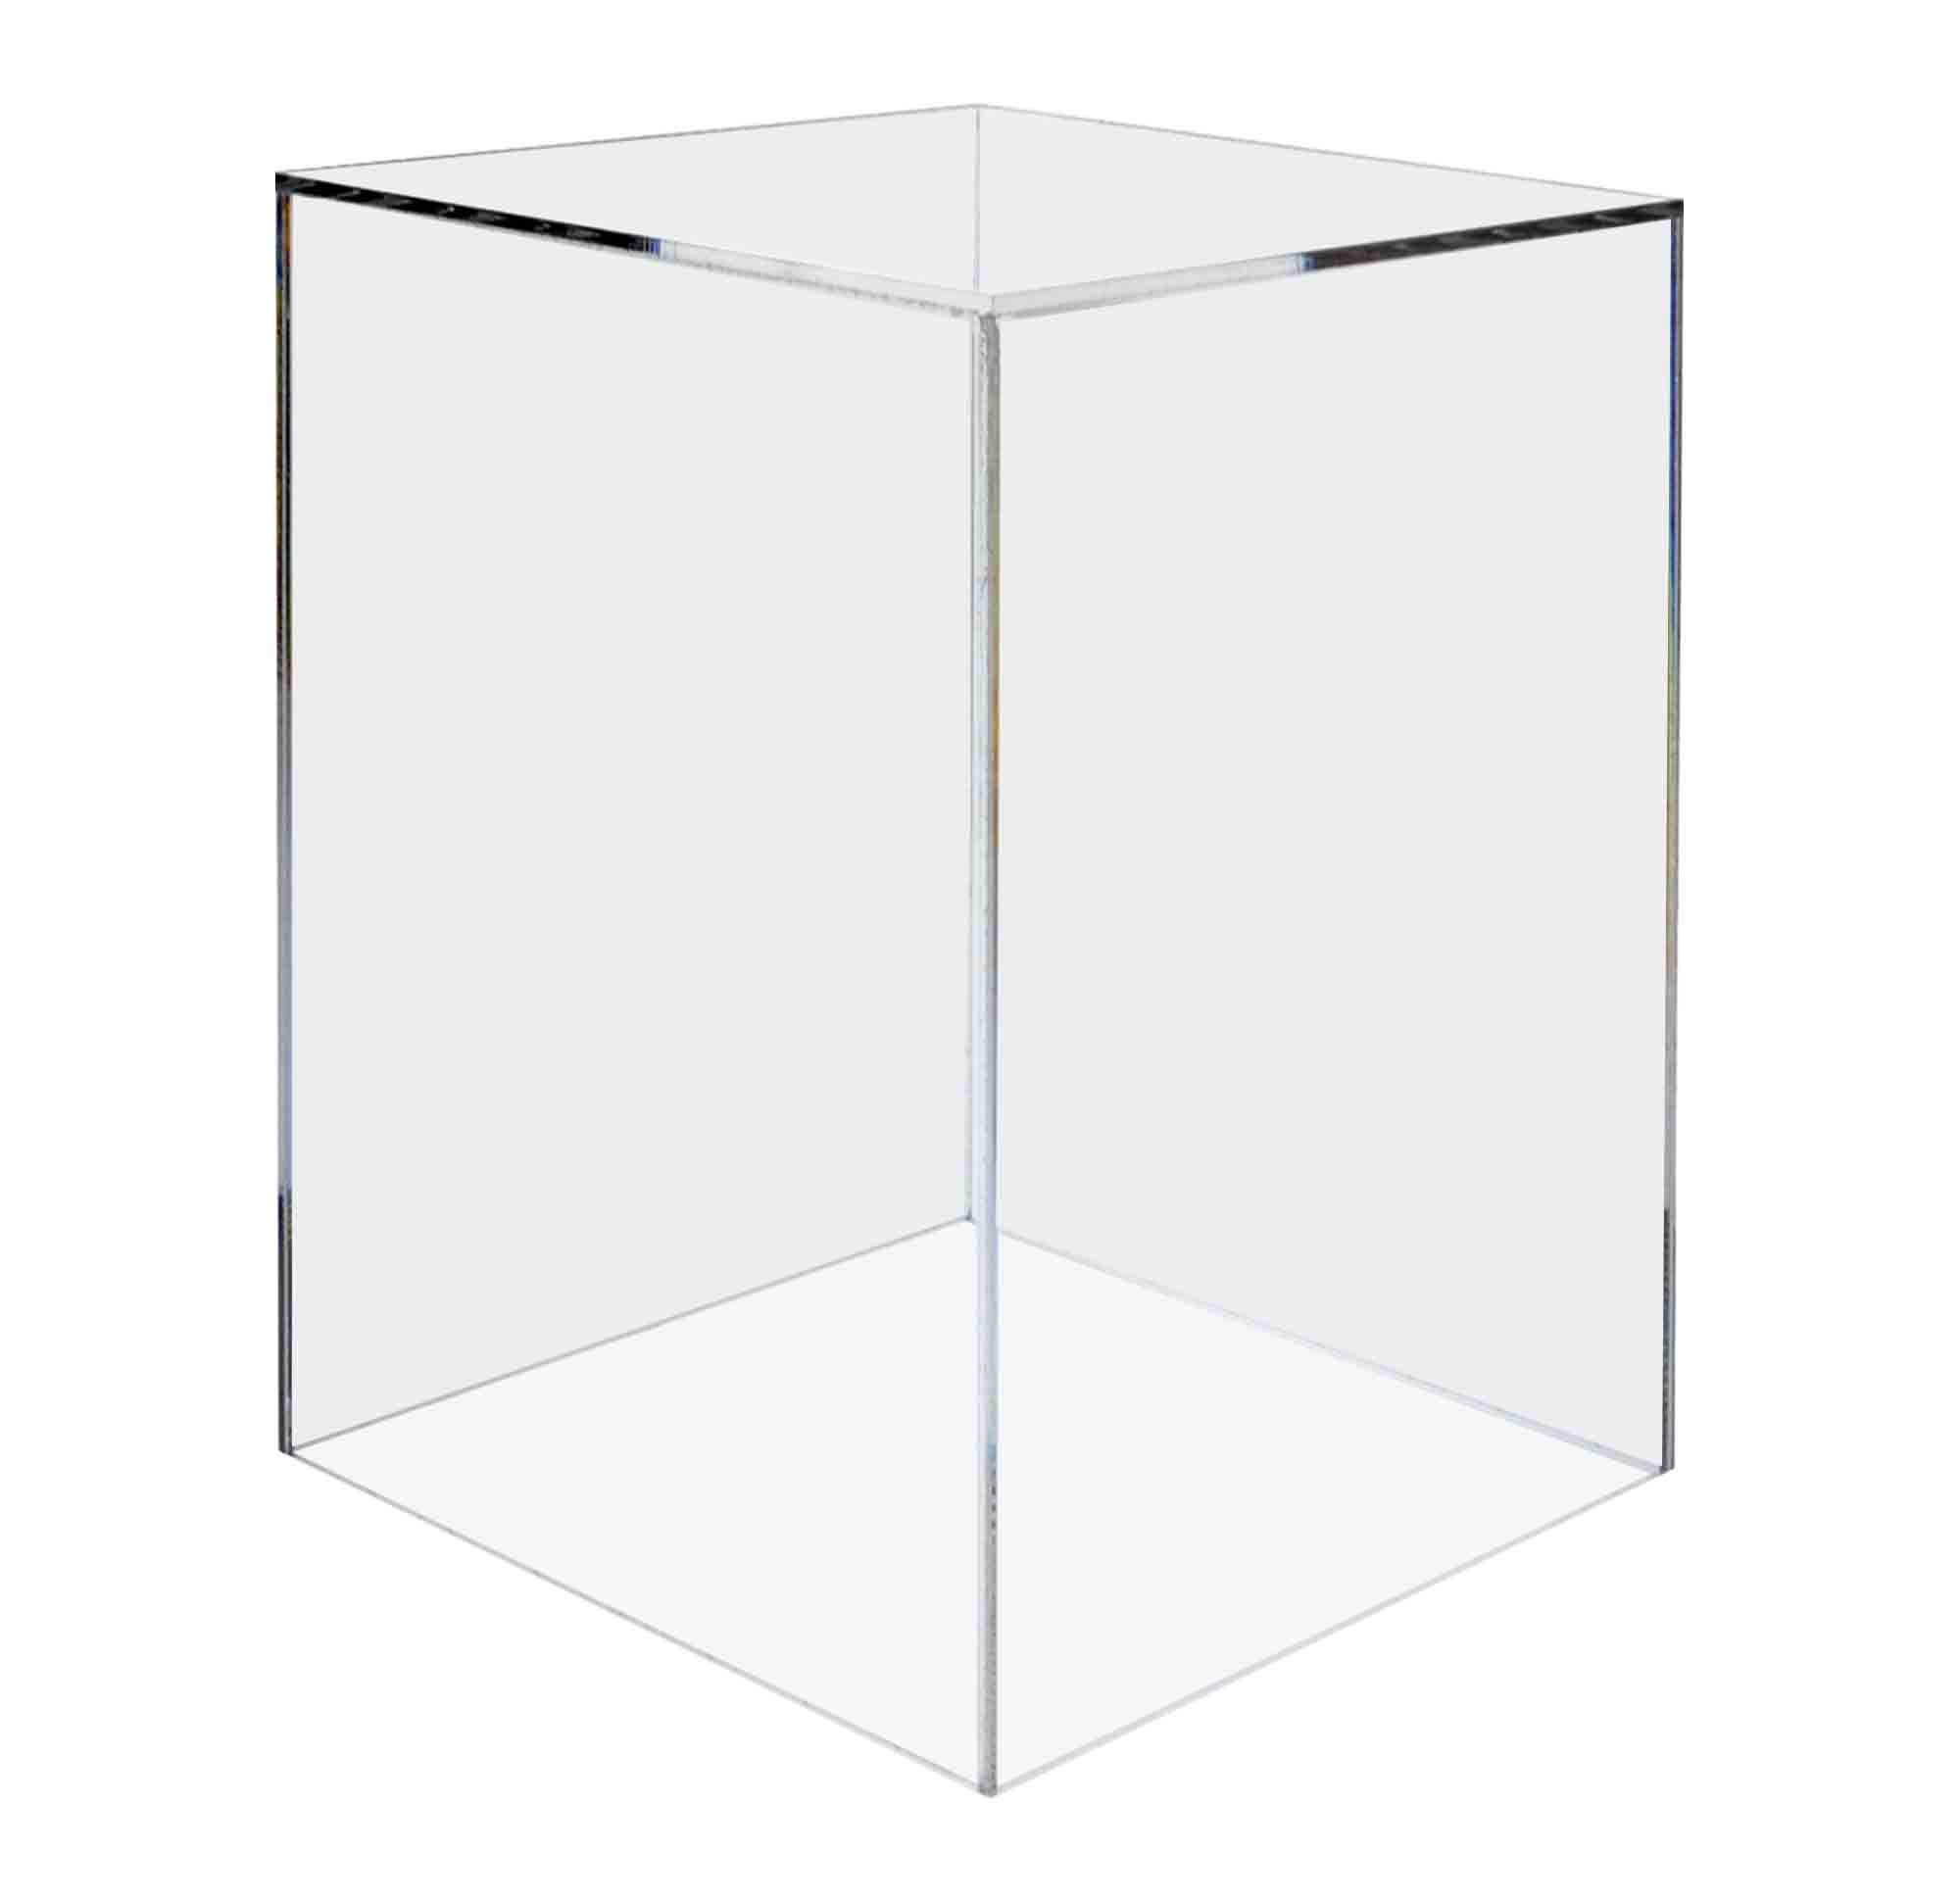 Marketing Holders Acrylic Jewelry Display Box Cube Toys Trinkets Collectible Items Safety Dust Cover Square 5 Sided Show Case Art Easel Pedestal Display 12''w x 16''h x 12''d Pack of 1